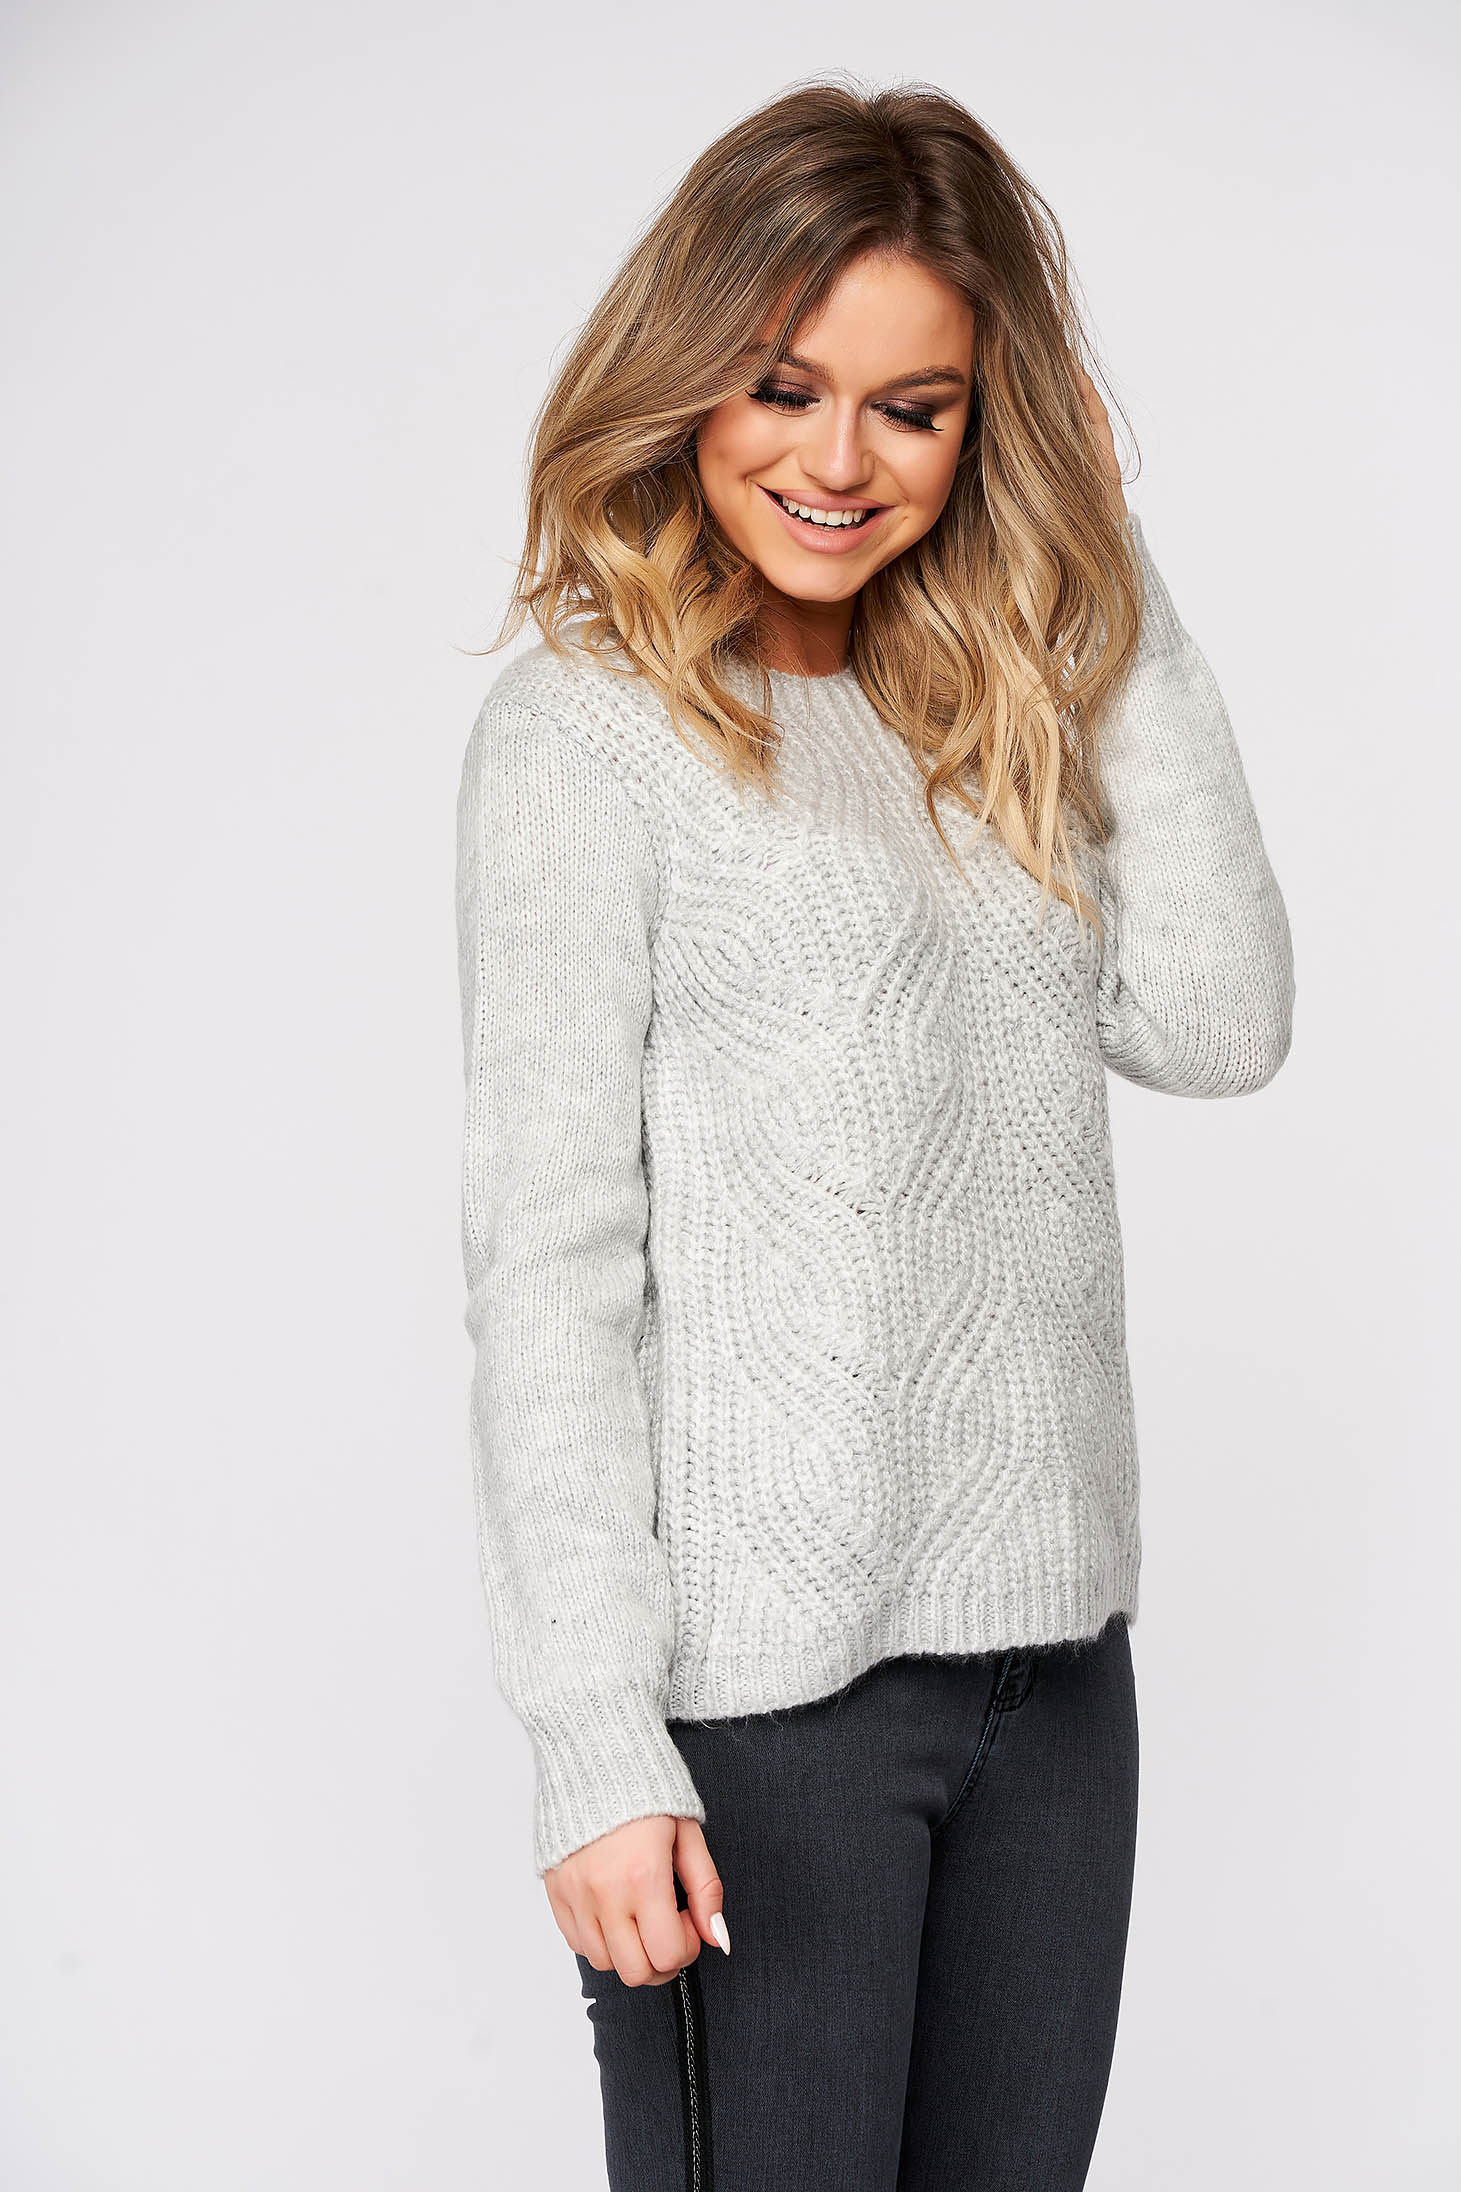 Lightgrey sweater loose fit knitted fabric